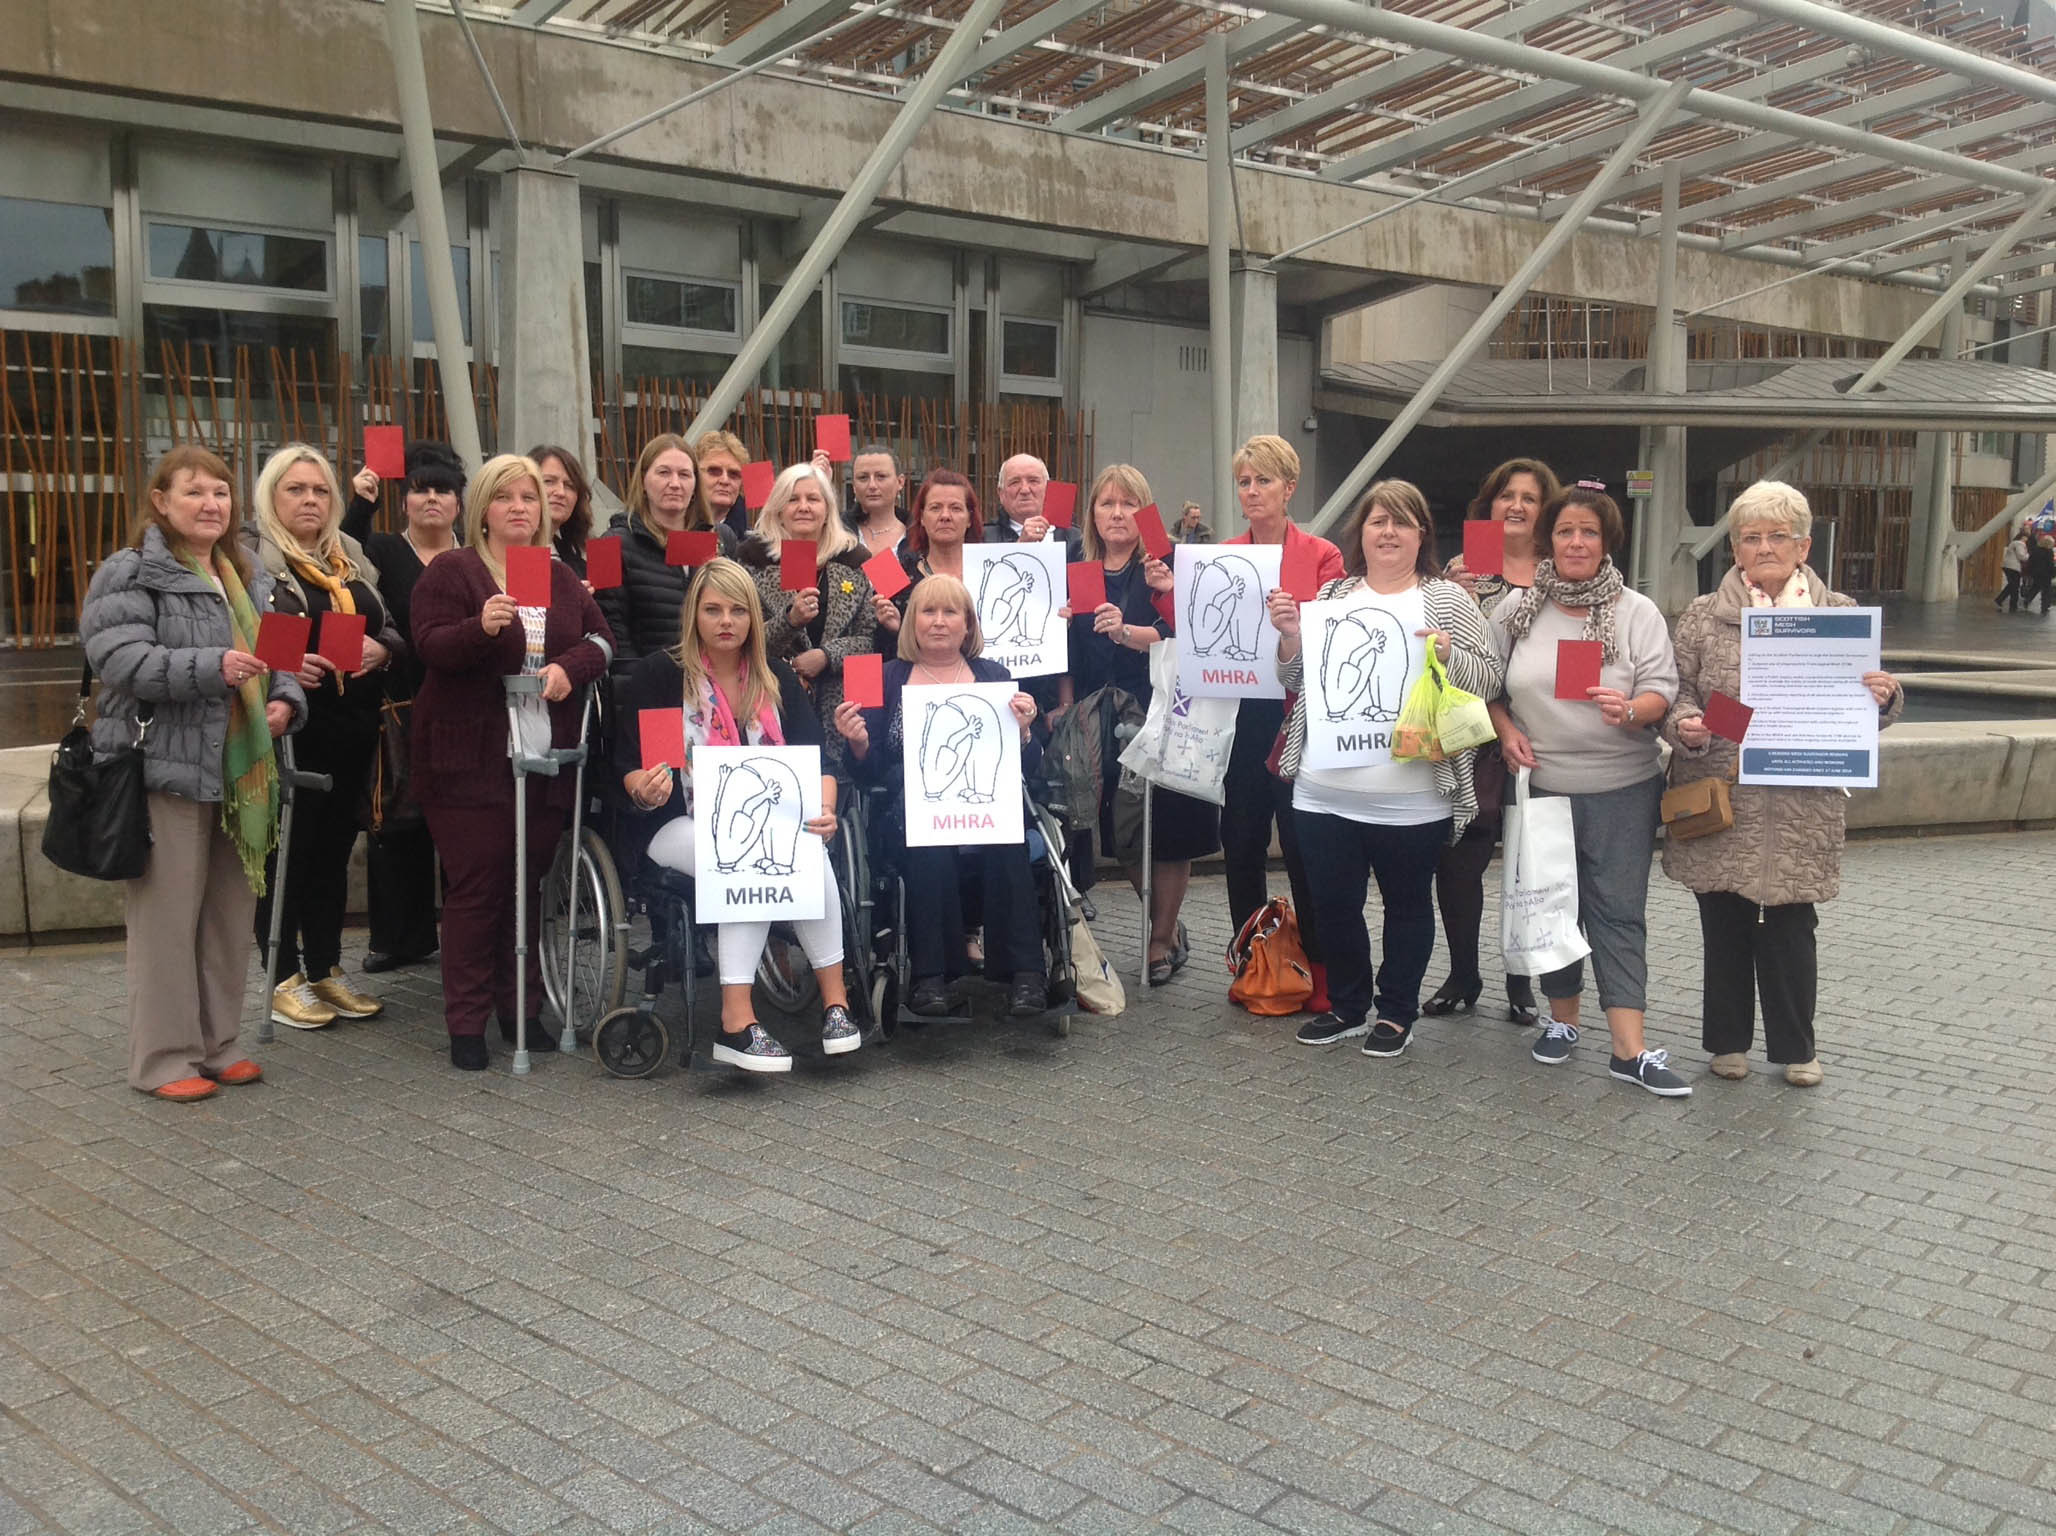 A group of campaigners lobbying against the use of mesh in surgical operations at the Scottish Parliament